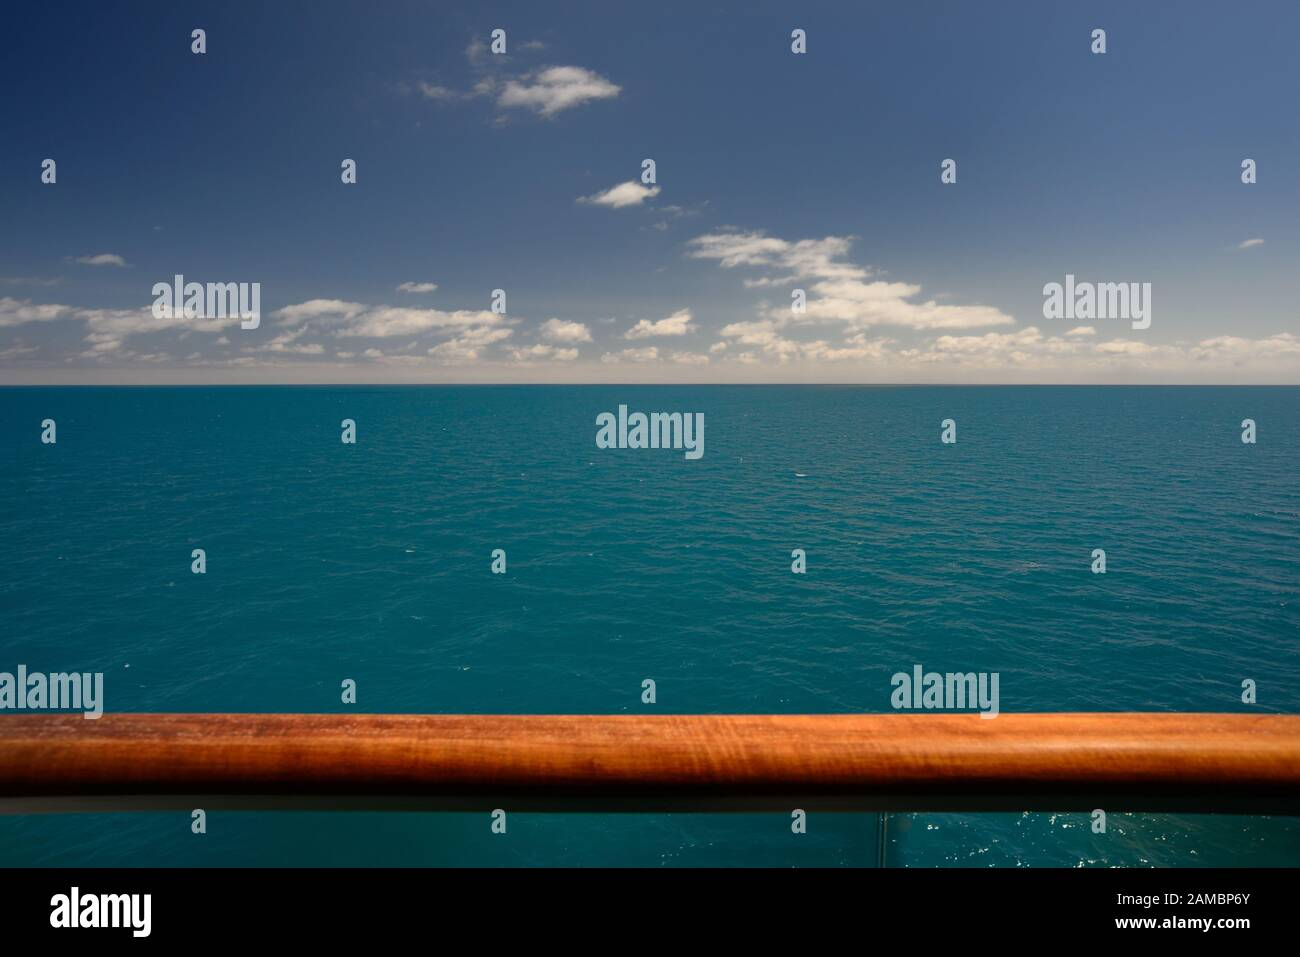 Blue sky, blue sea, and the handrail of a cruise ship. Stock Photo